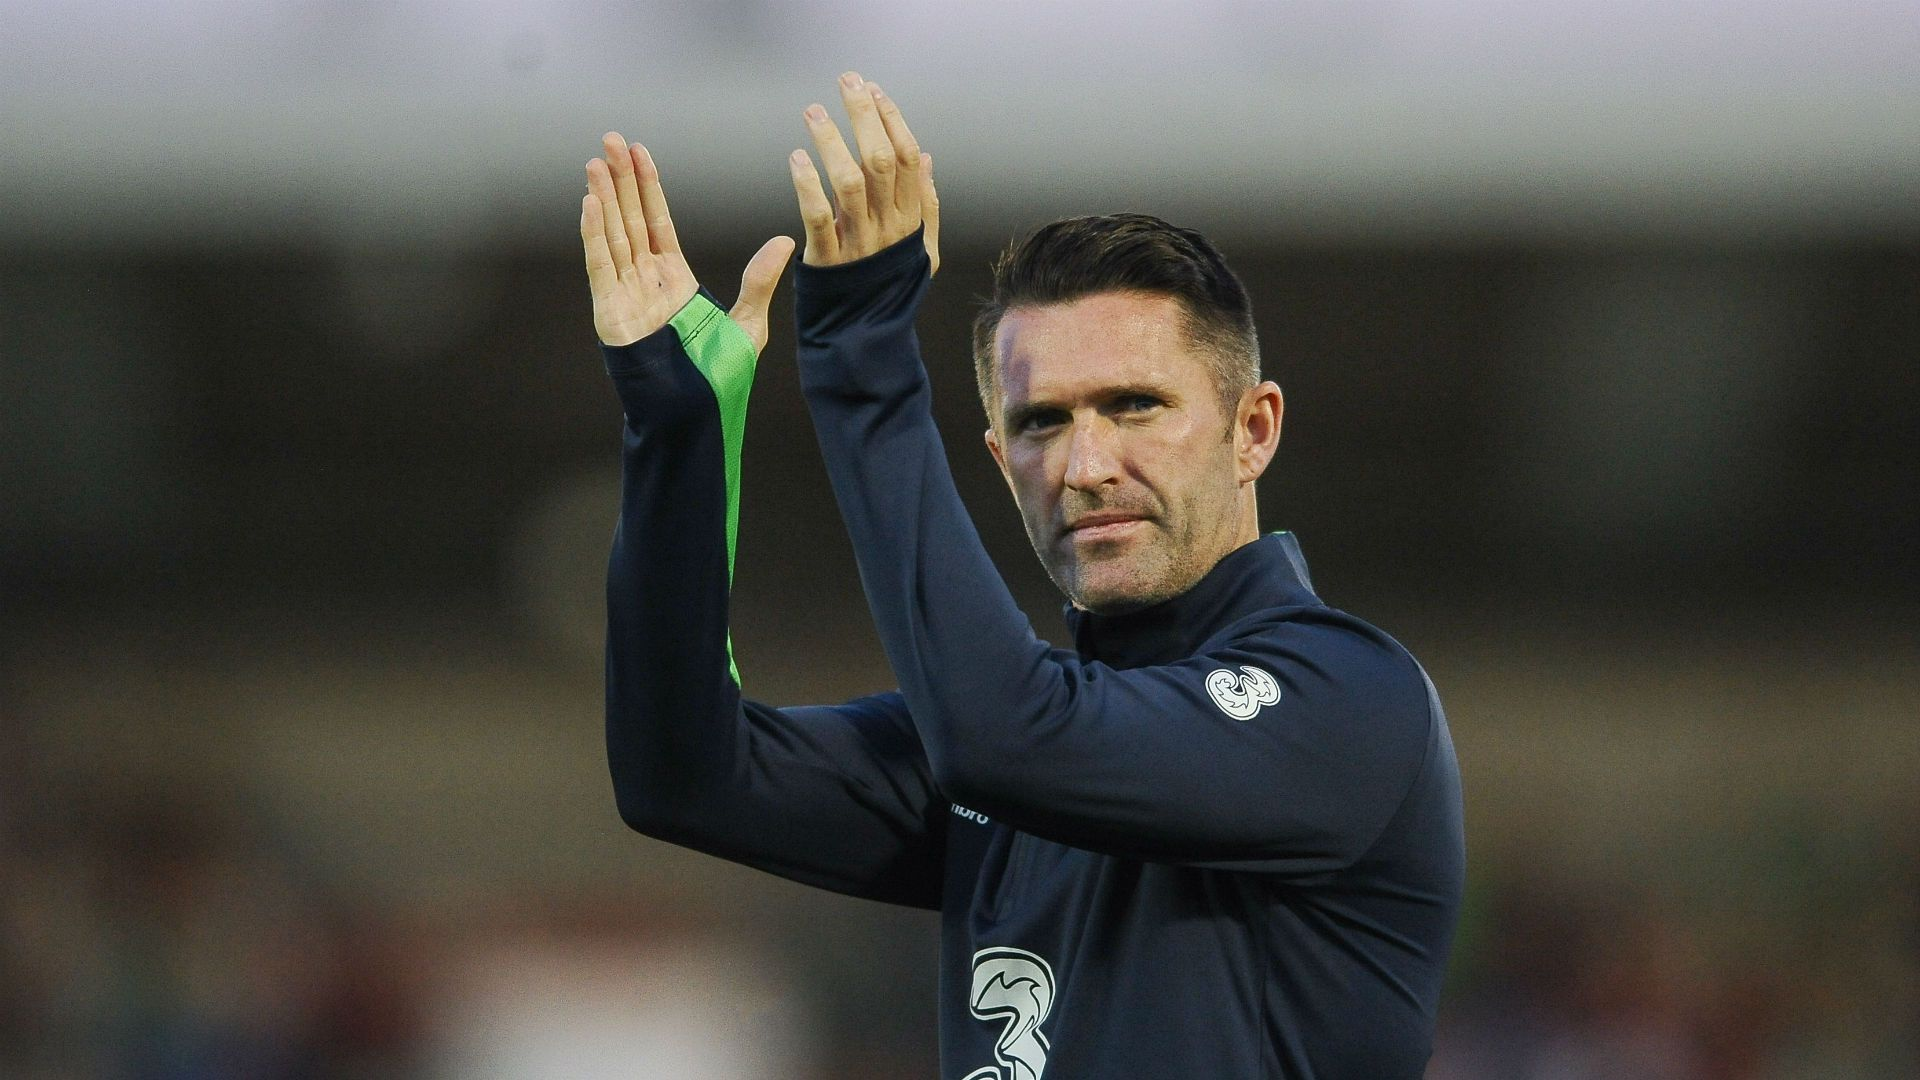 Keane: I'm not a cheerleader I'm here to play